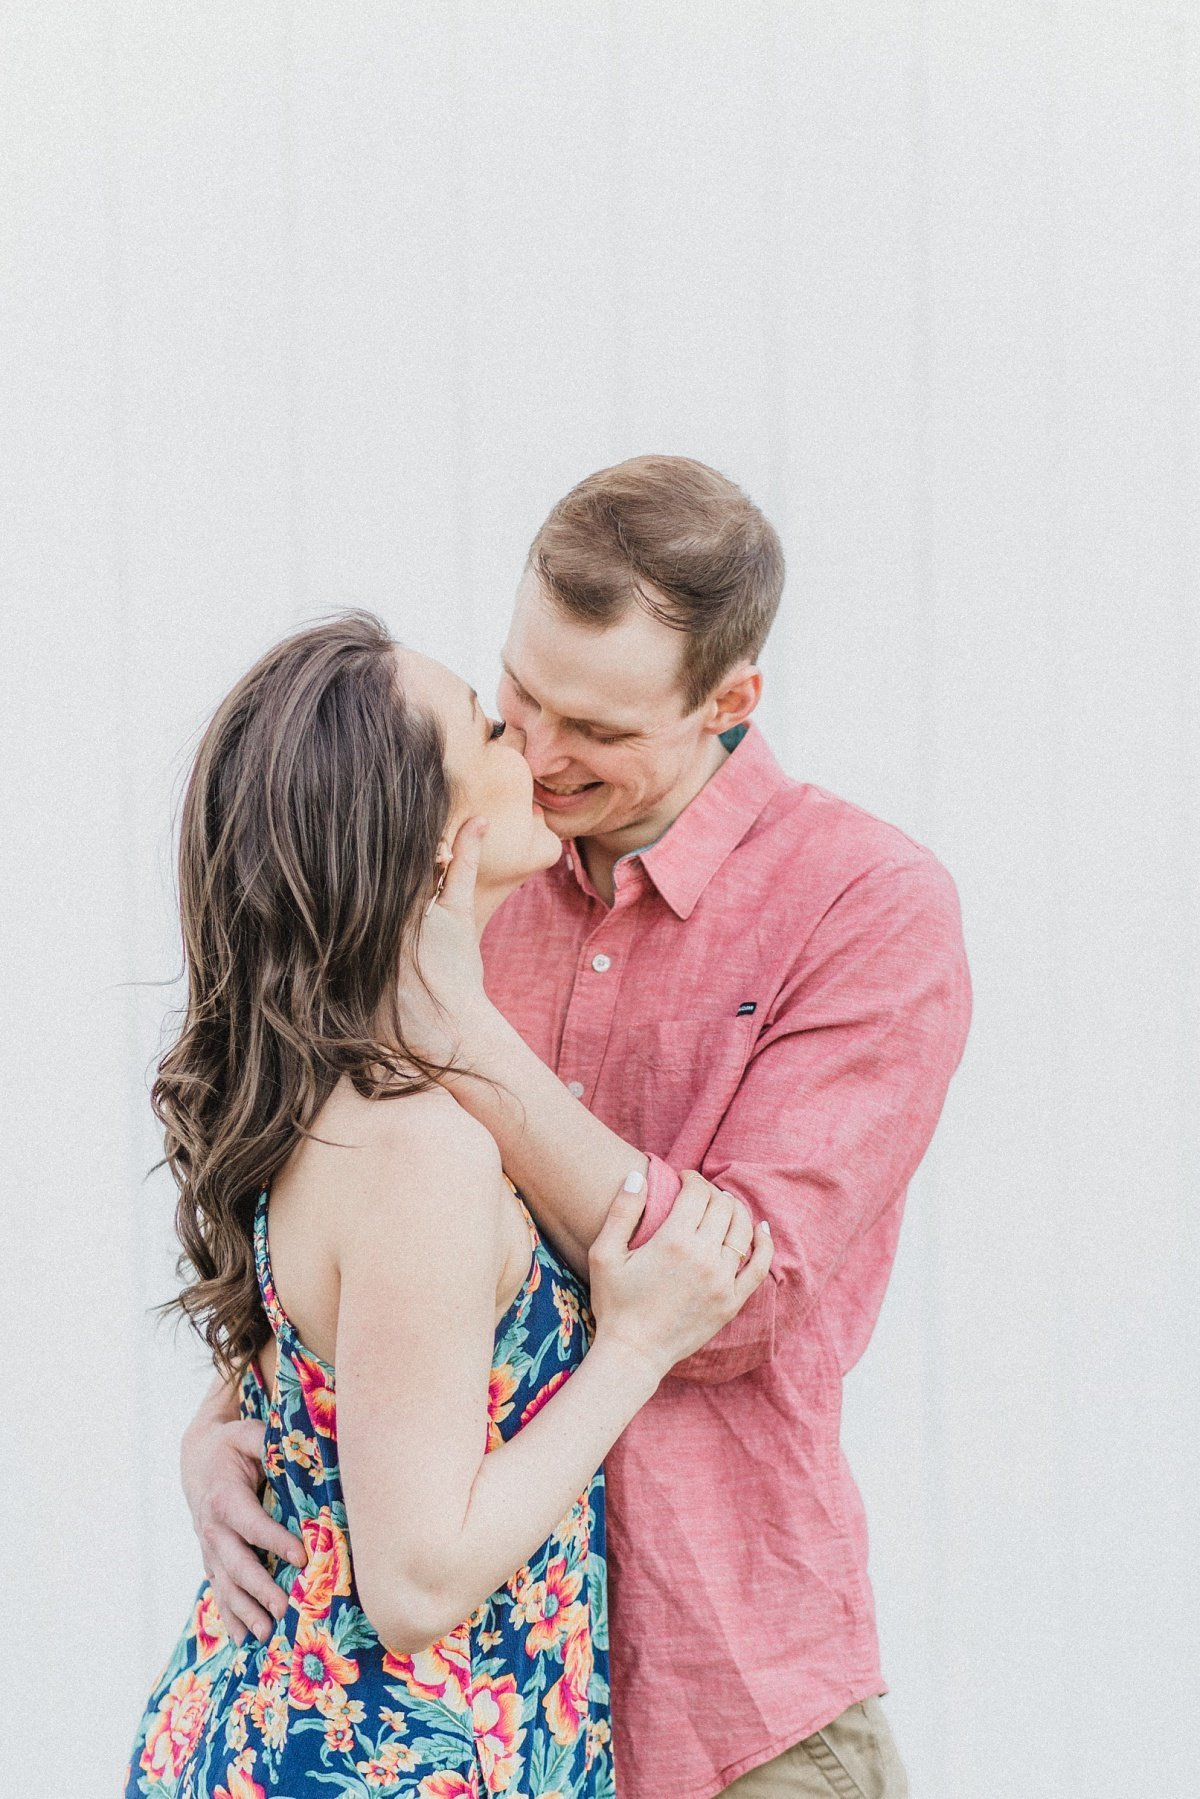 josh-leah-old-mill-farm-engagement-session_0124